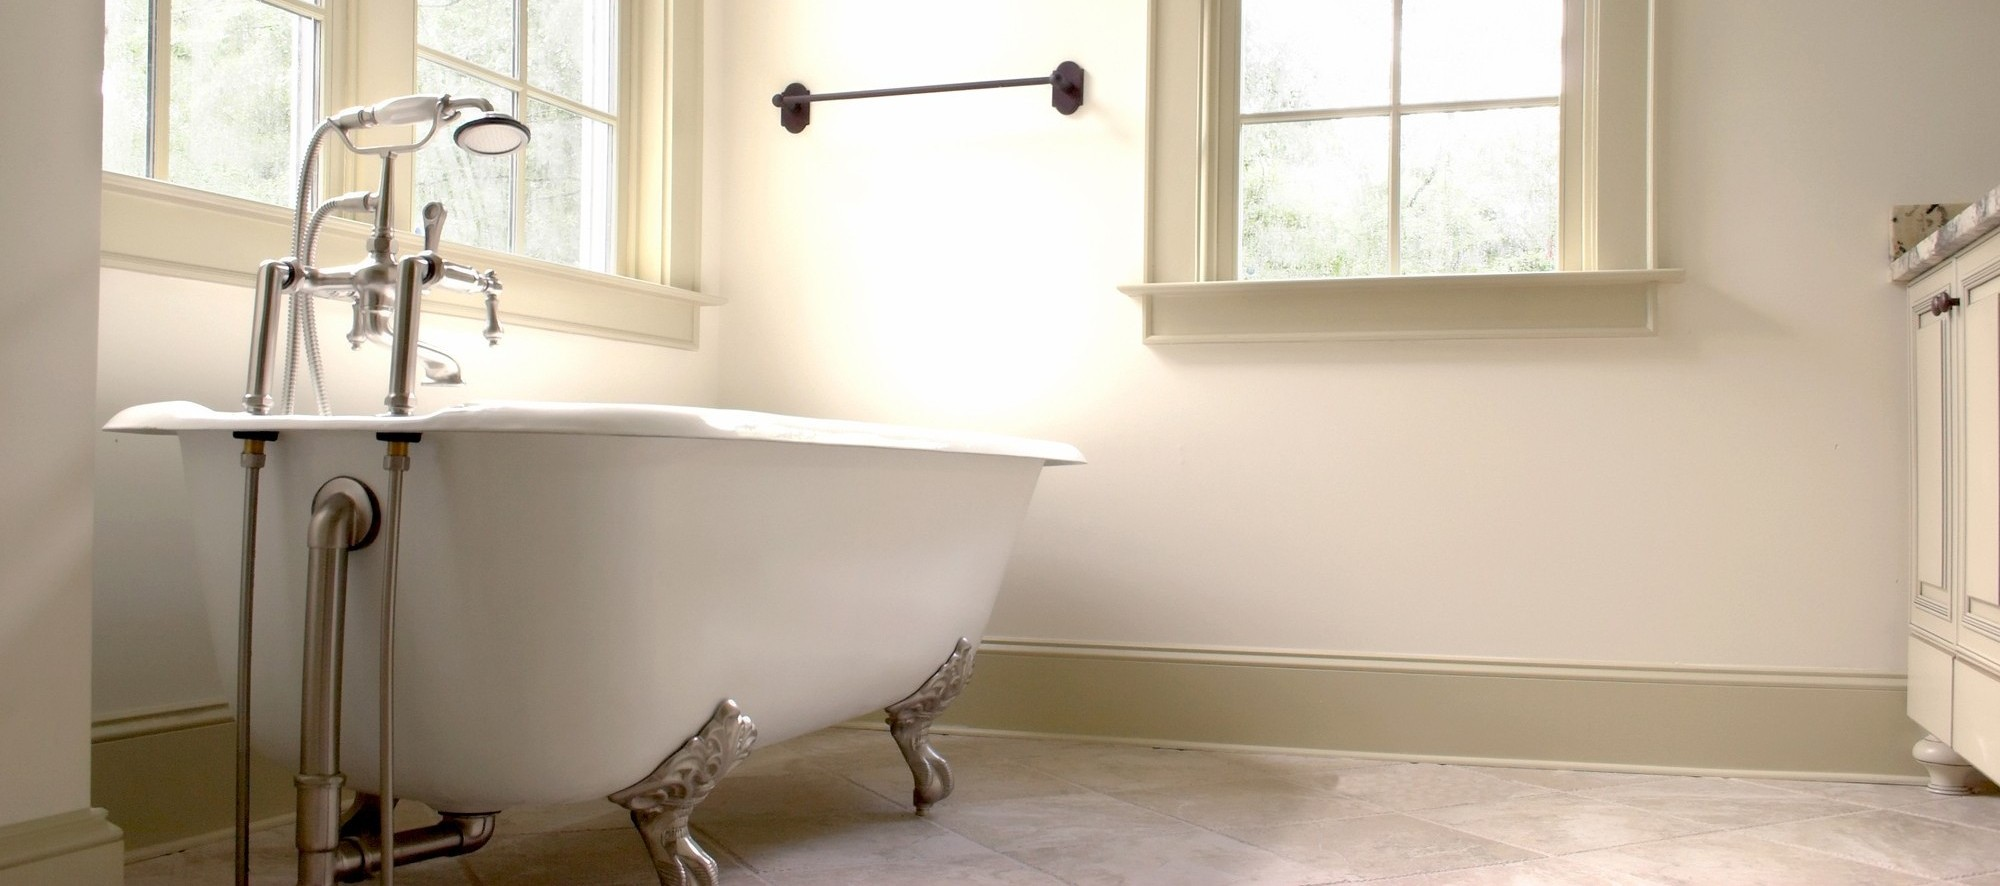 Bathtub Reglaze, Tile Refinishing, Porcelain Refinishing | Contra ...